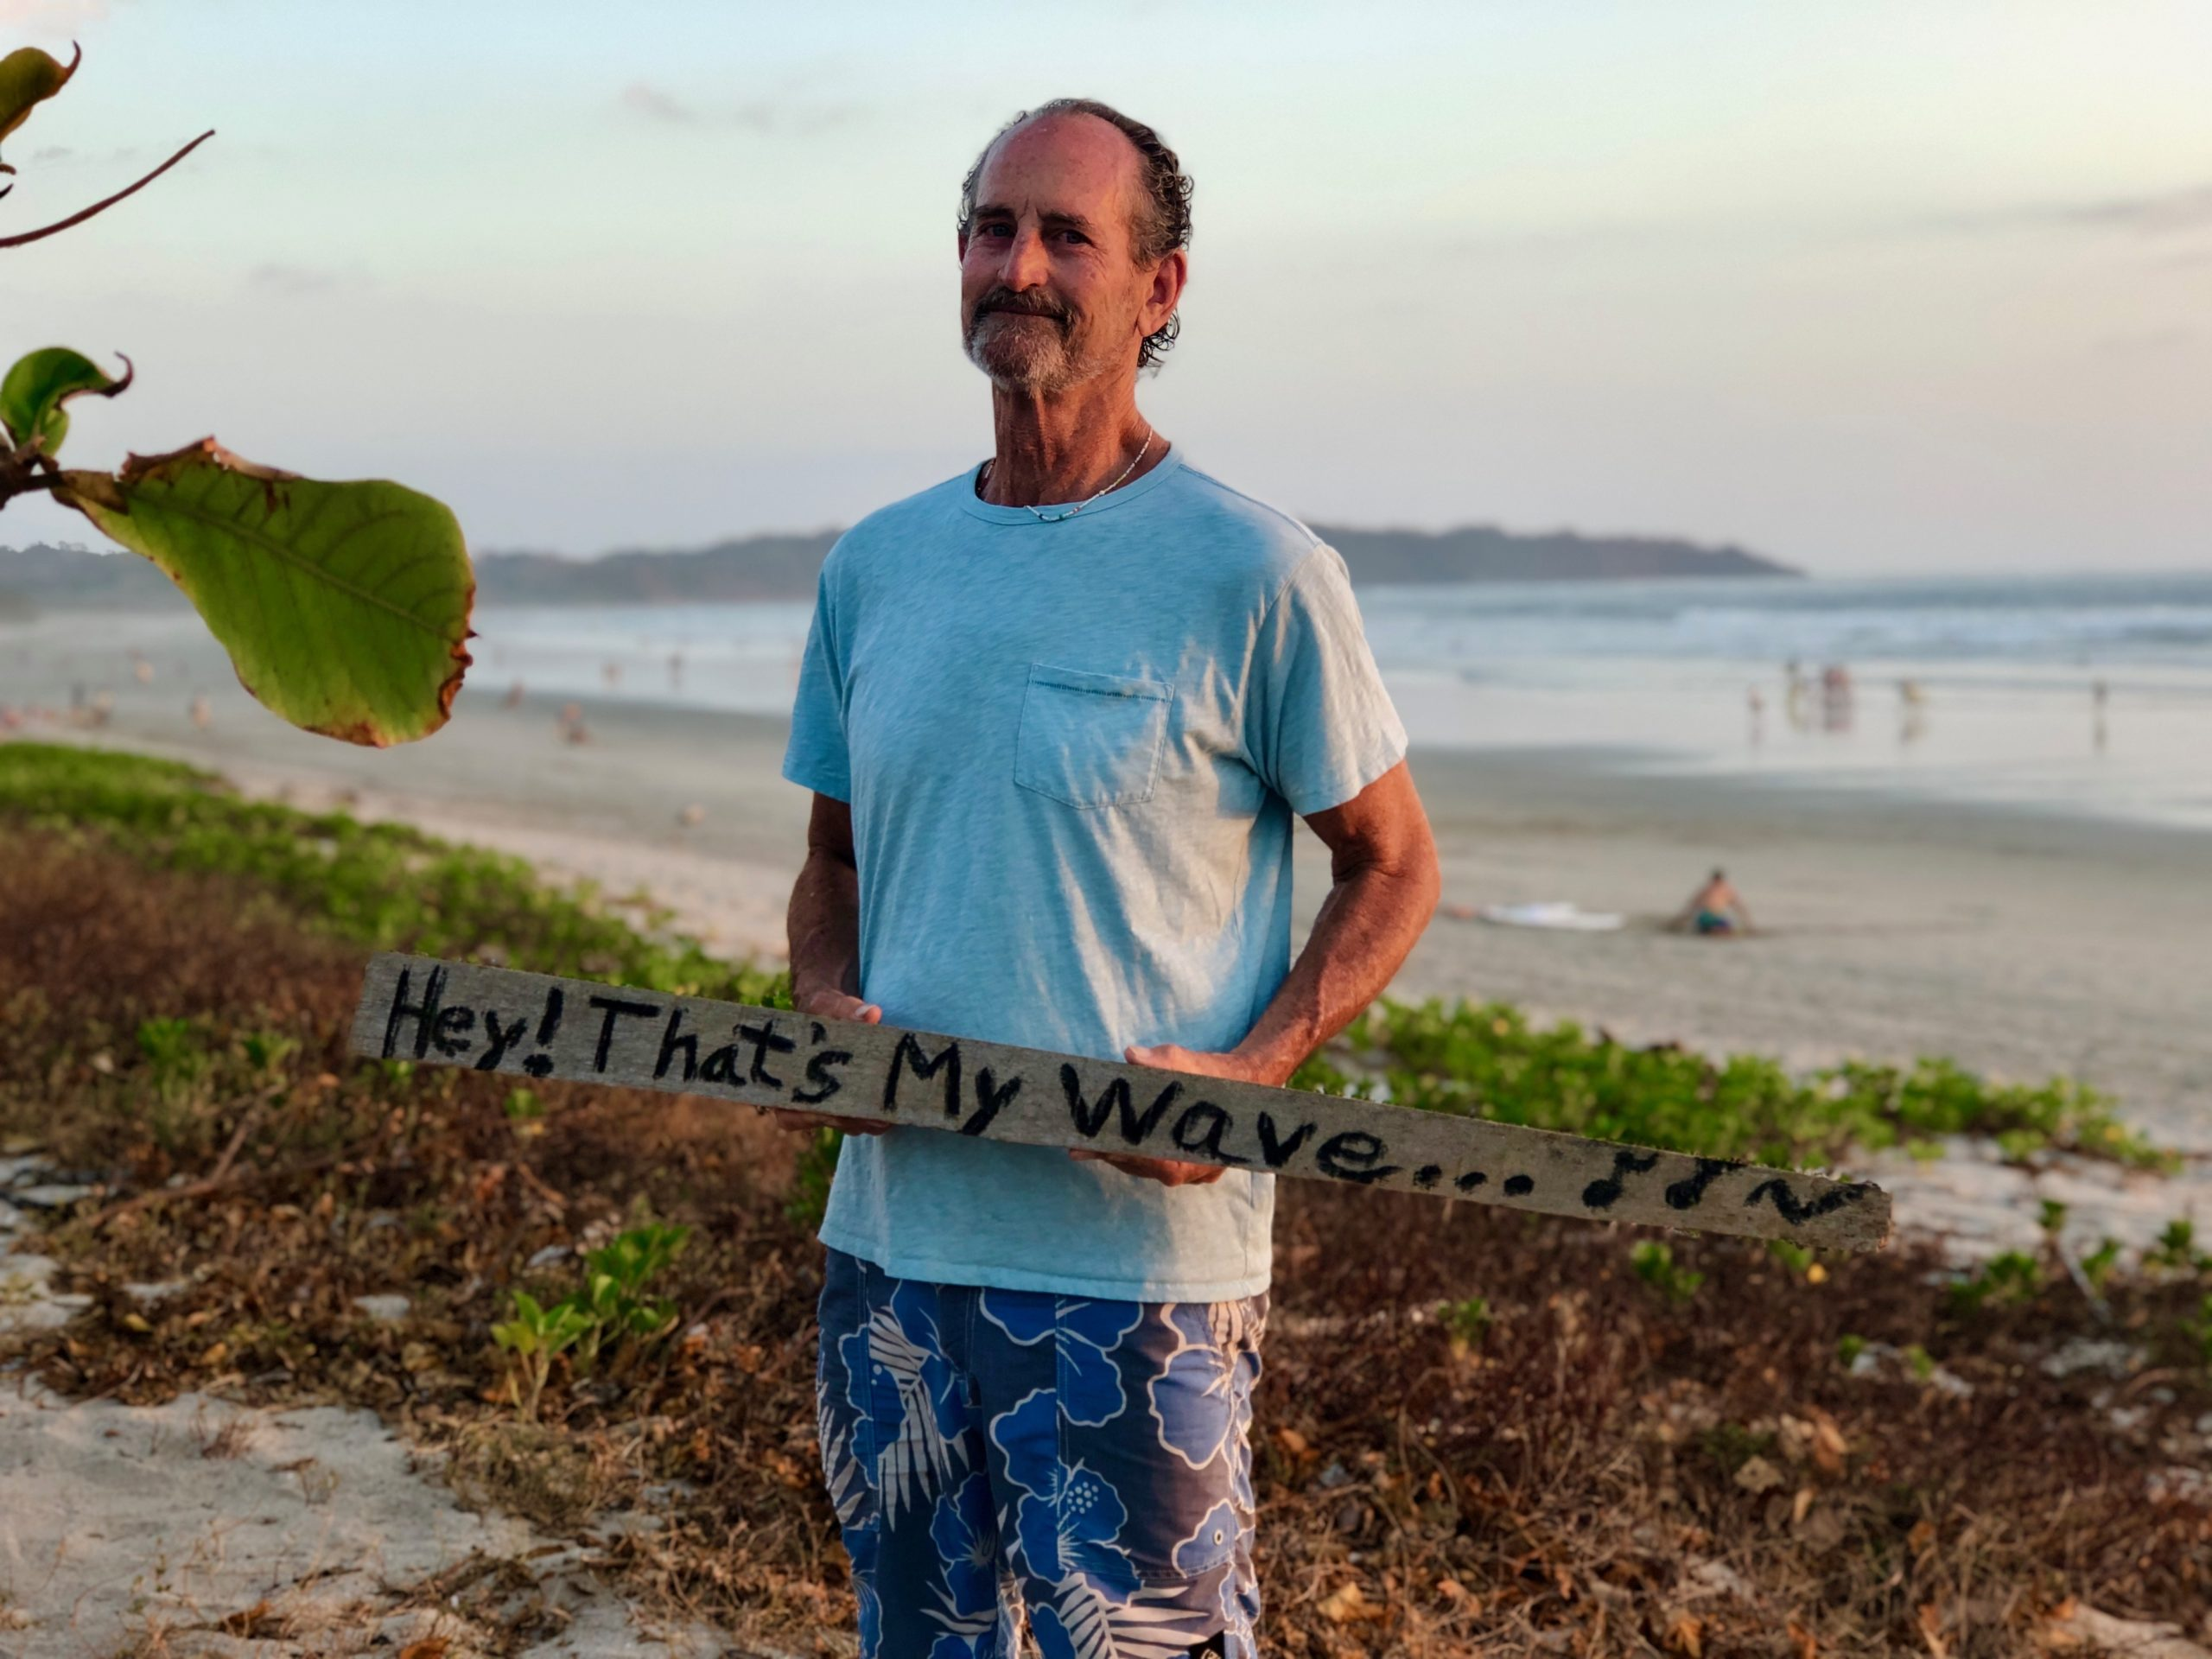 Sag Harbor chiropractor, surfer and musician Dr. Glenn Goodman has penned a song that appears on Jimmy Buffett's latest album.